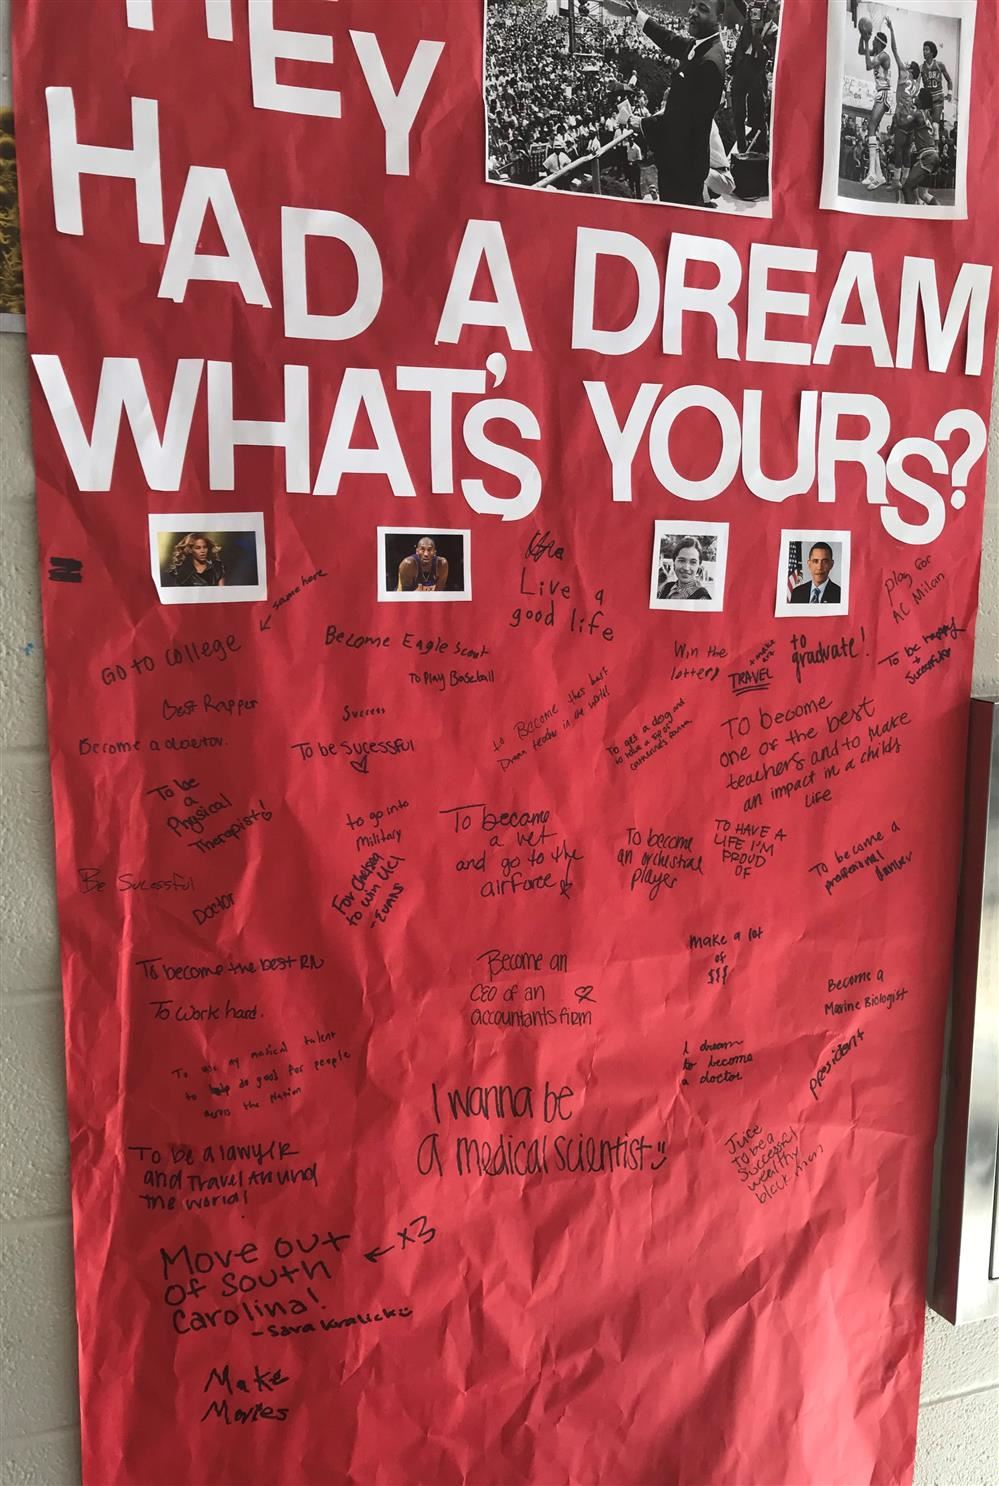 Inspired by Black History Month, we asked Dreher students at lunch: